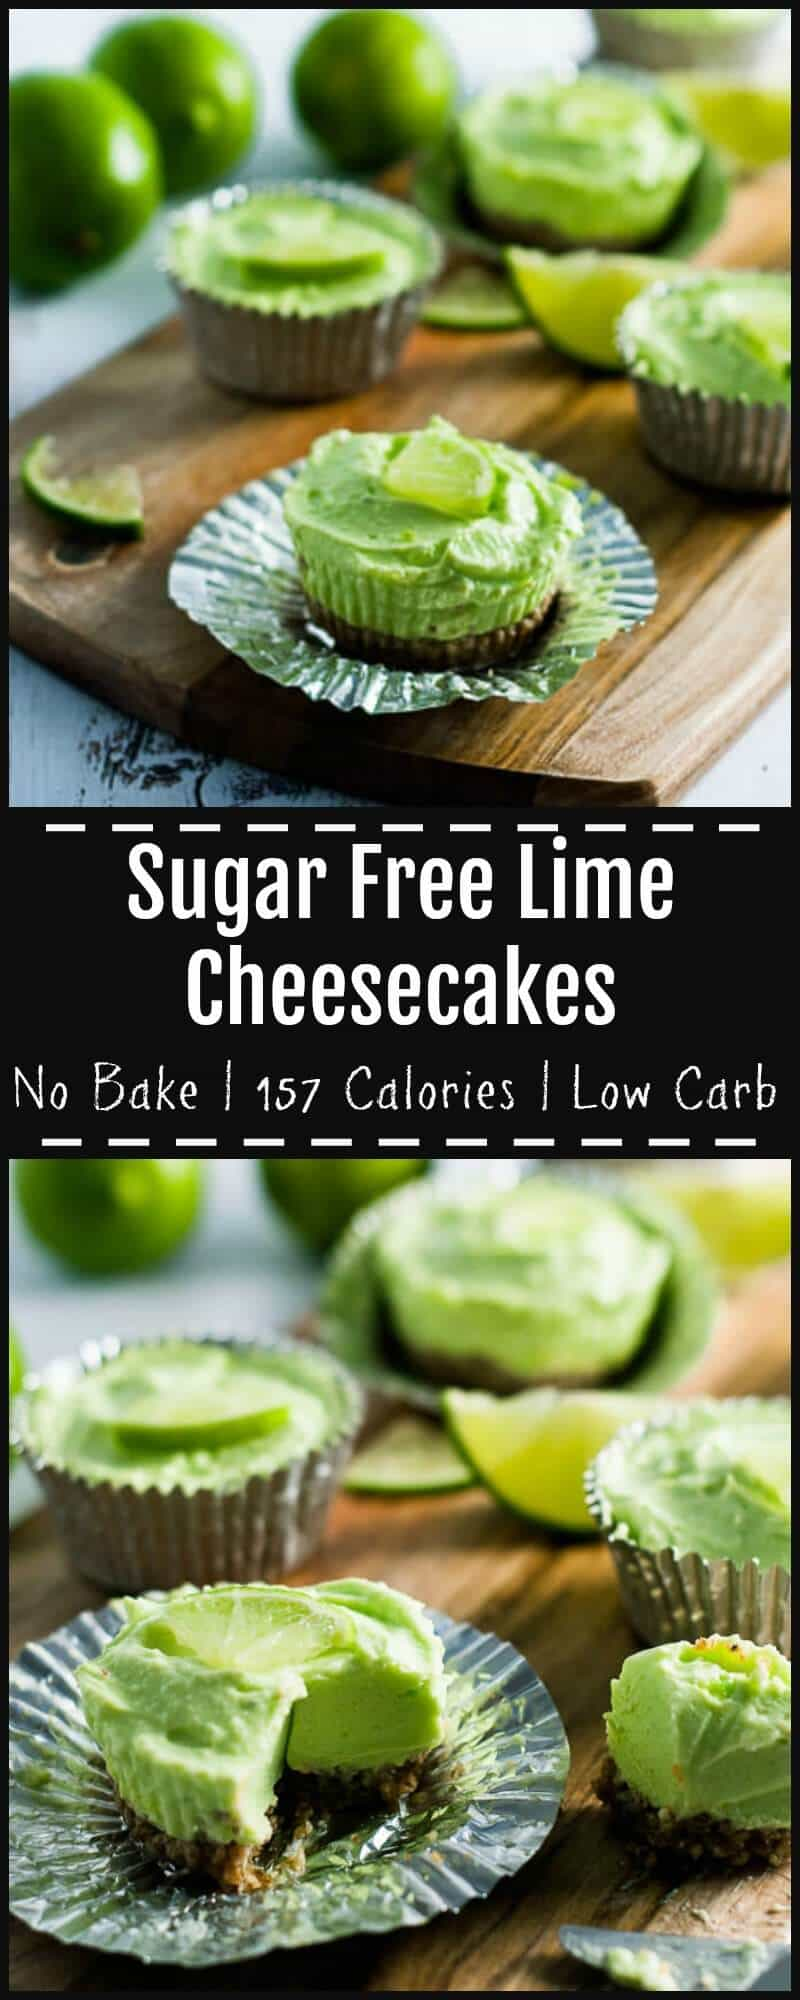 This sugar free lime cheesecake is deliciously light, rich and creamy, with a crunchy nutty toasted walnut base. Low carb, stevia sweetened. 157 Calories.